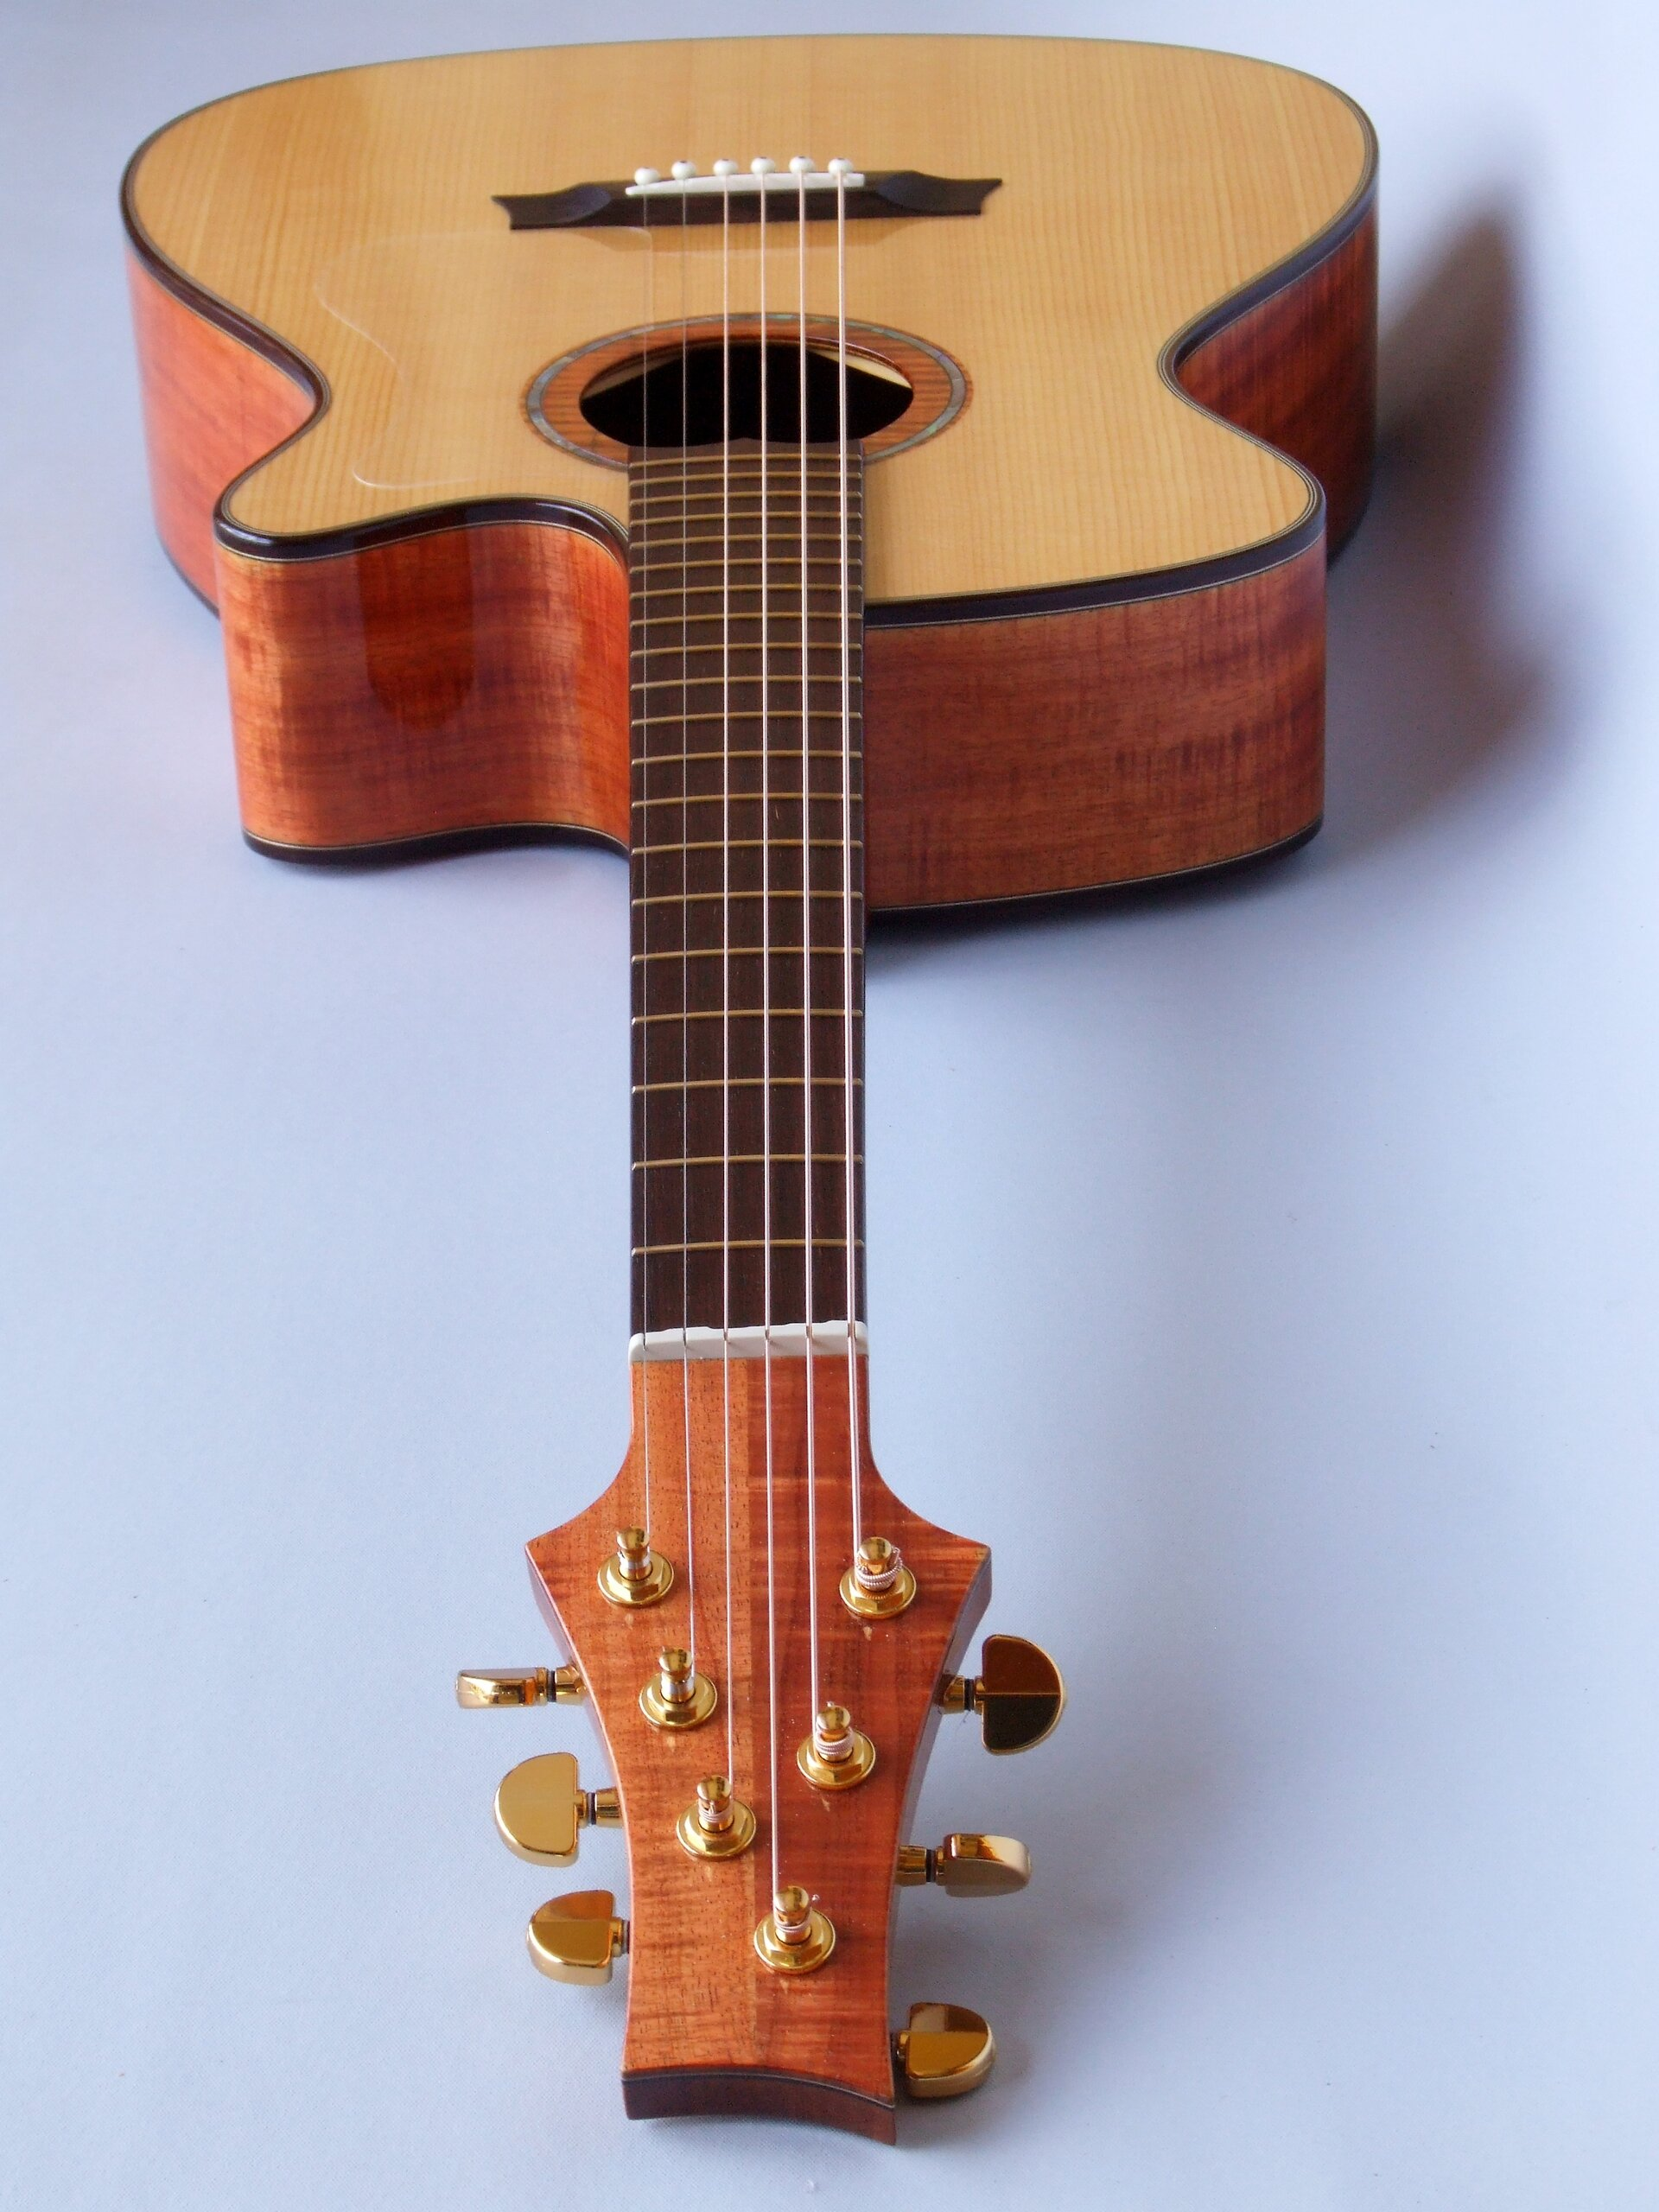 Looking down the neck of a blackwood guitar with rosewood binding